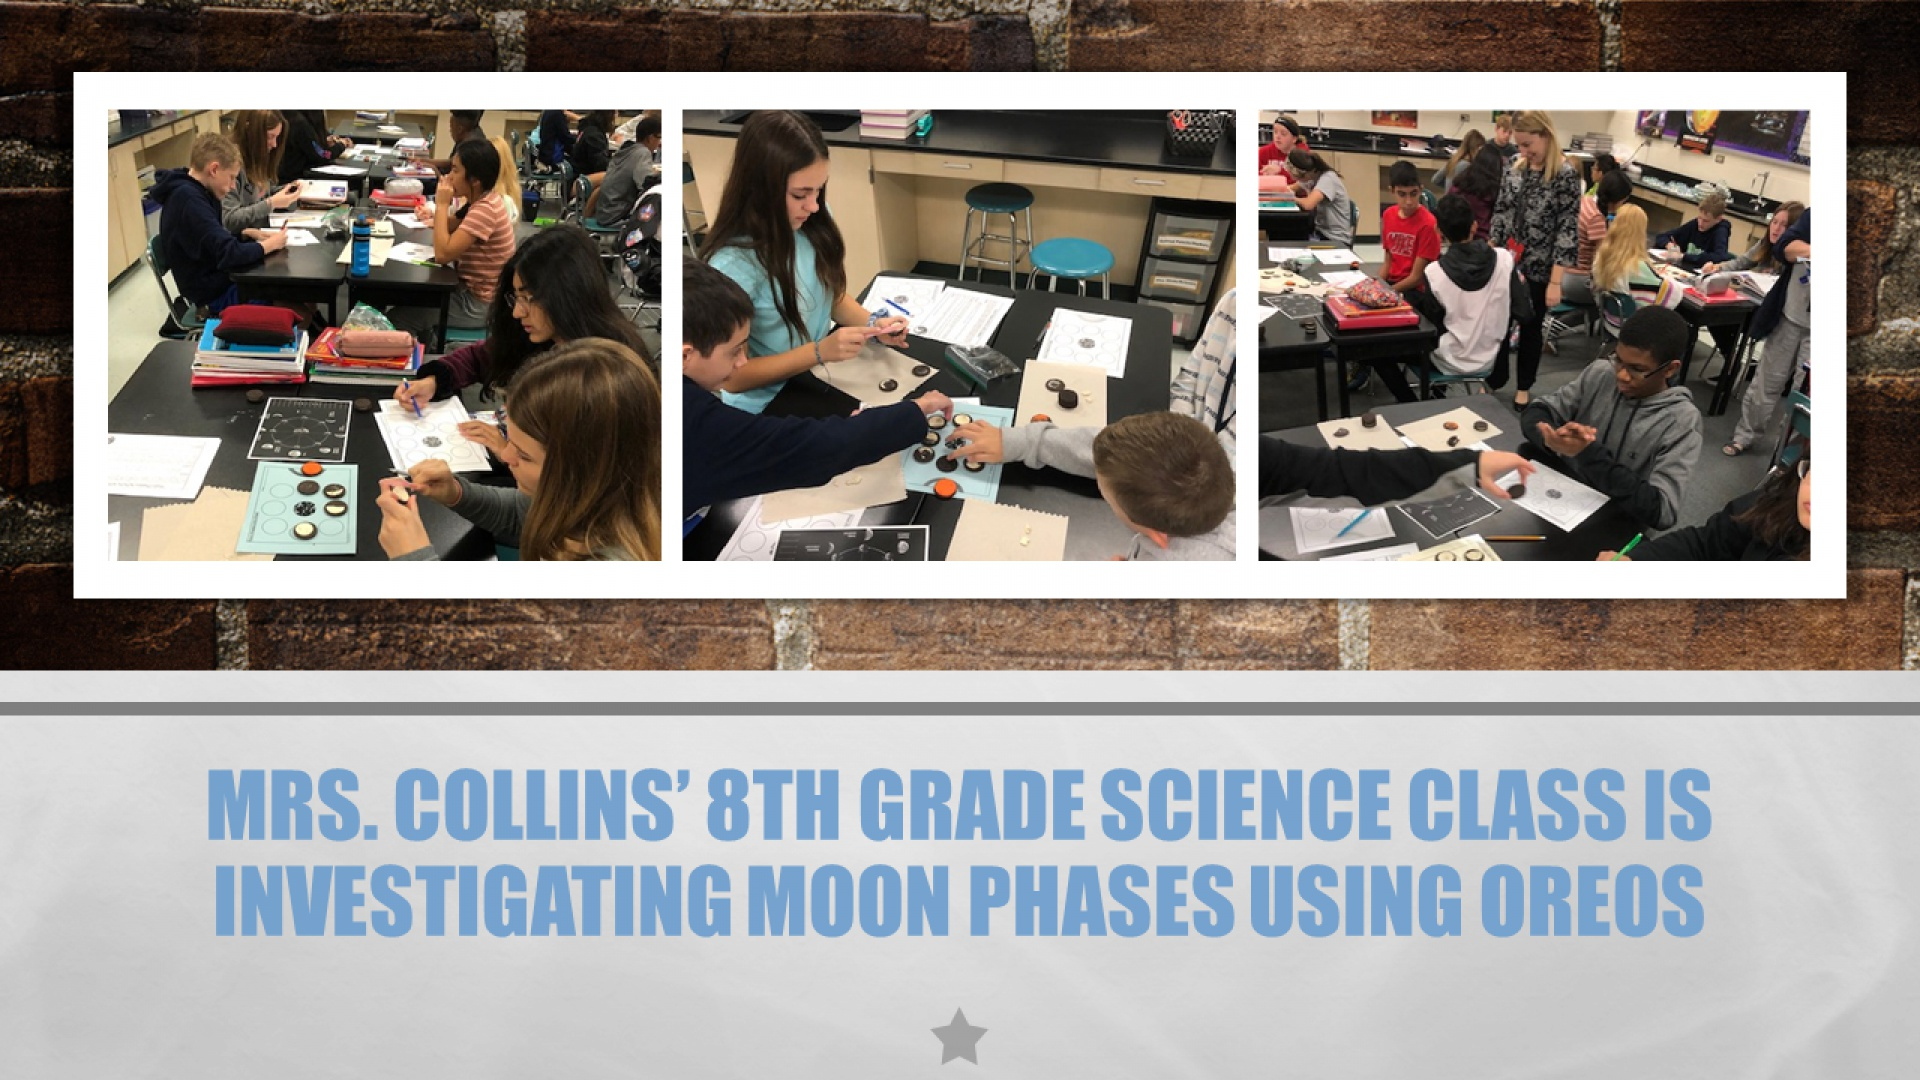 Mrs. Collins' 8th Grade Science Class